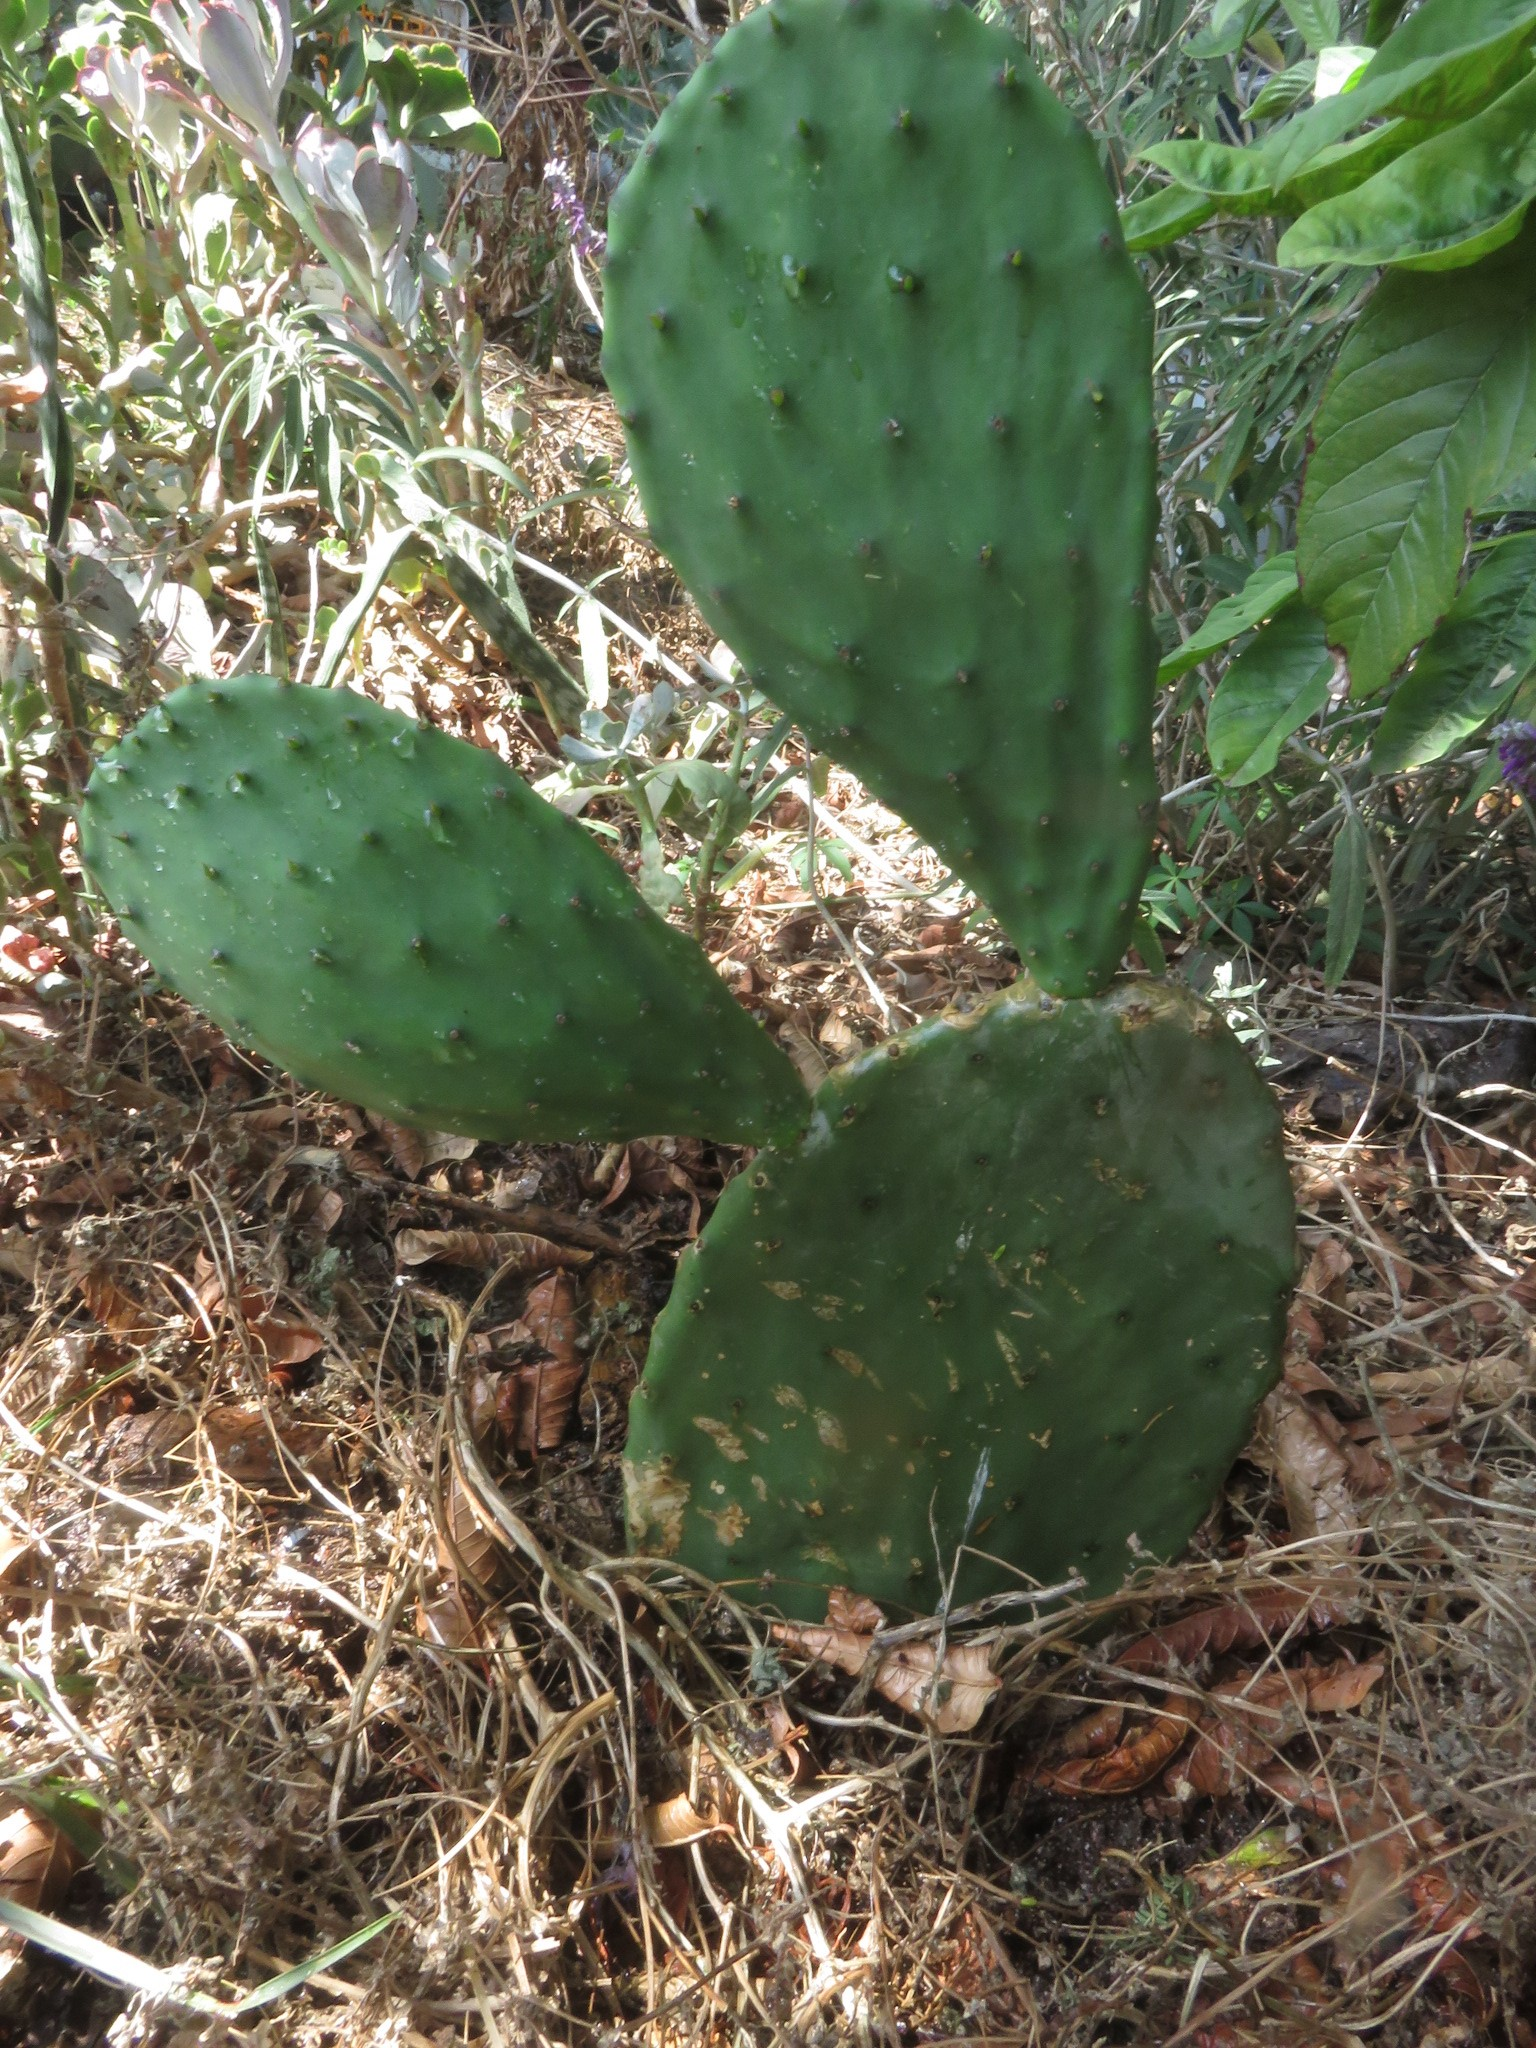 This cactus has round ended pads at a better stage for harvesting